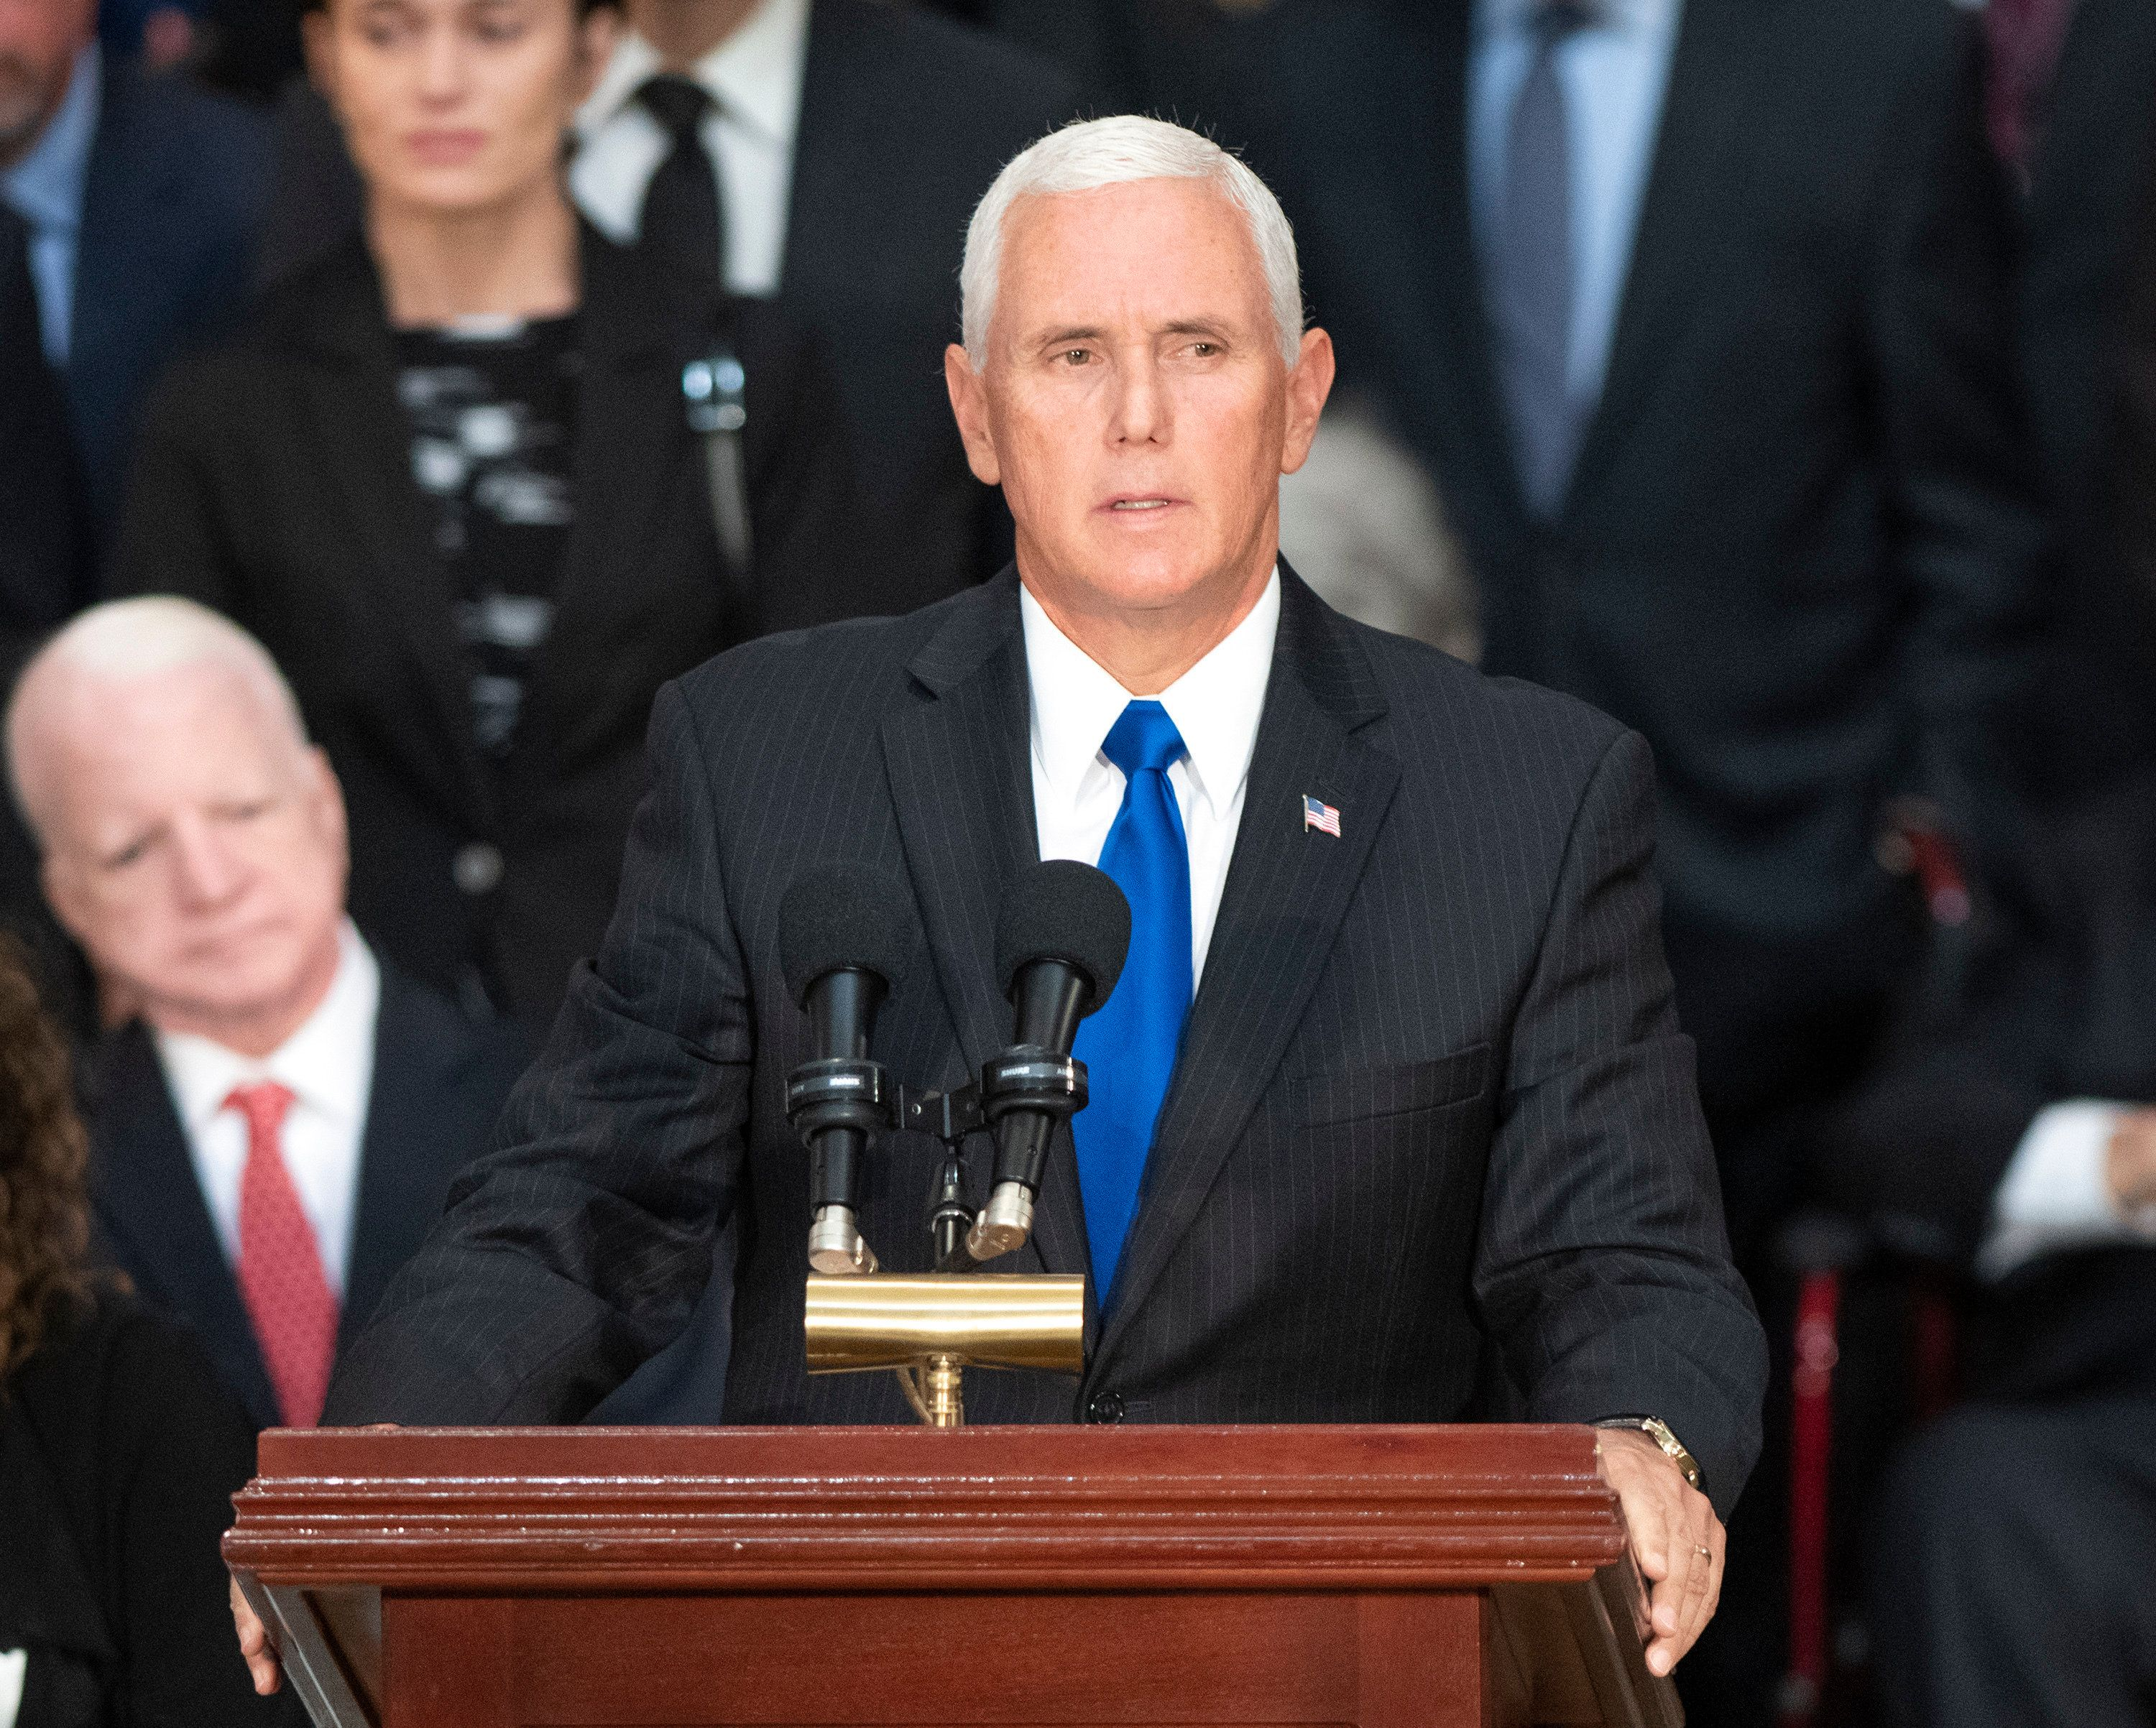 United States Vice President Mike Pence makes remarks during the Lying in State ceremony honoring the late US Senator John McCain (Republican of Arizona) in the US Capitol Rotunda in Washington, DC on Friday, August 31, 2018. Credit: Ron Sachs / CNP/Sipa USA (RESTRICTION: NO New York or New Jersey Newspapers or newspapers within a 75 mile radius of New York City)